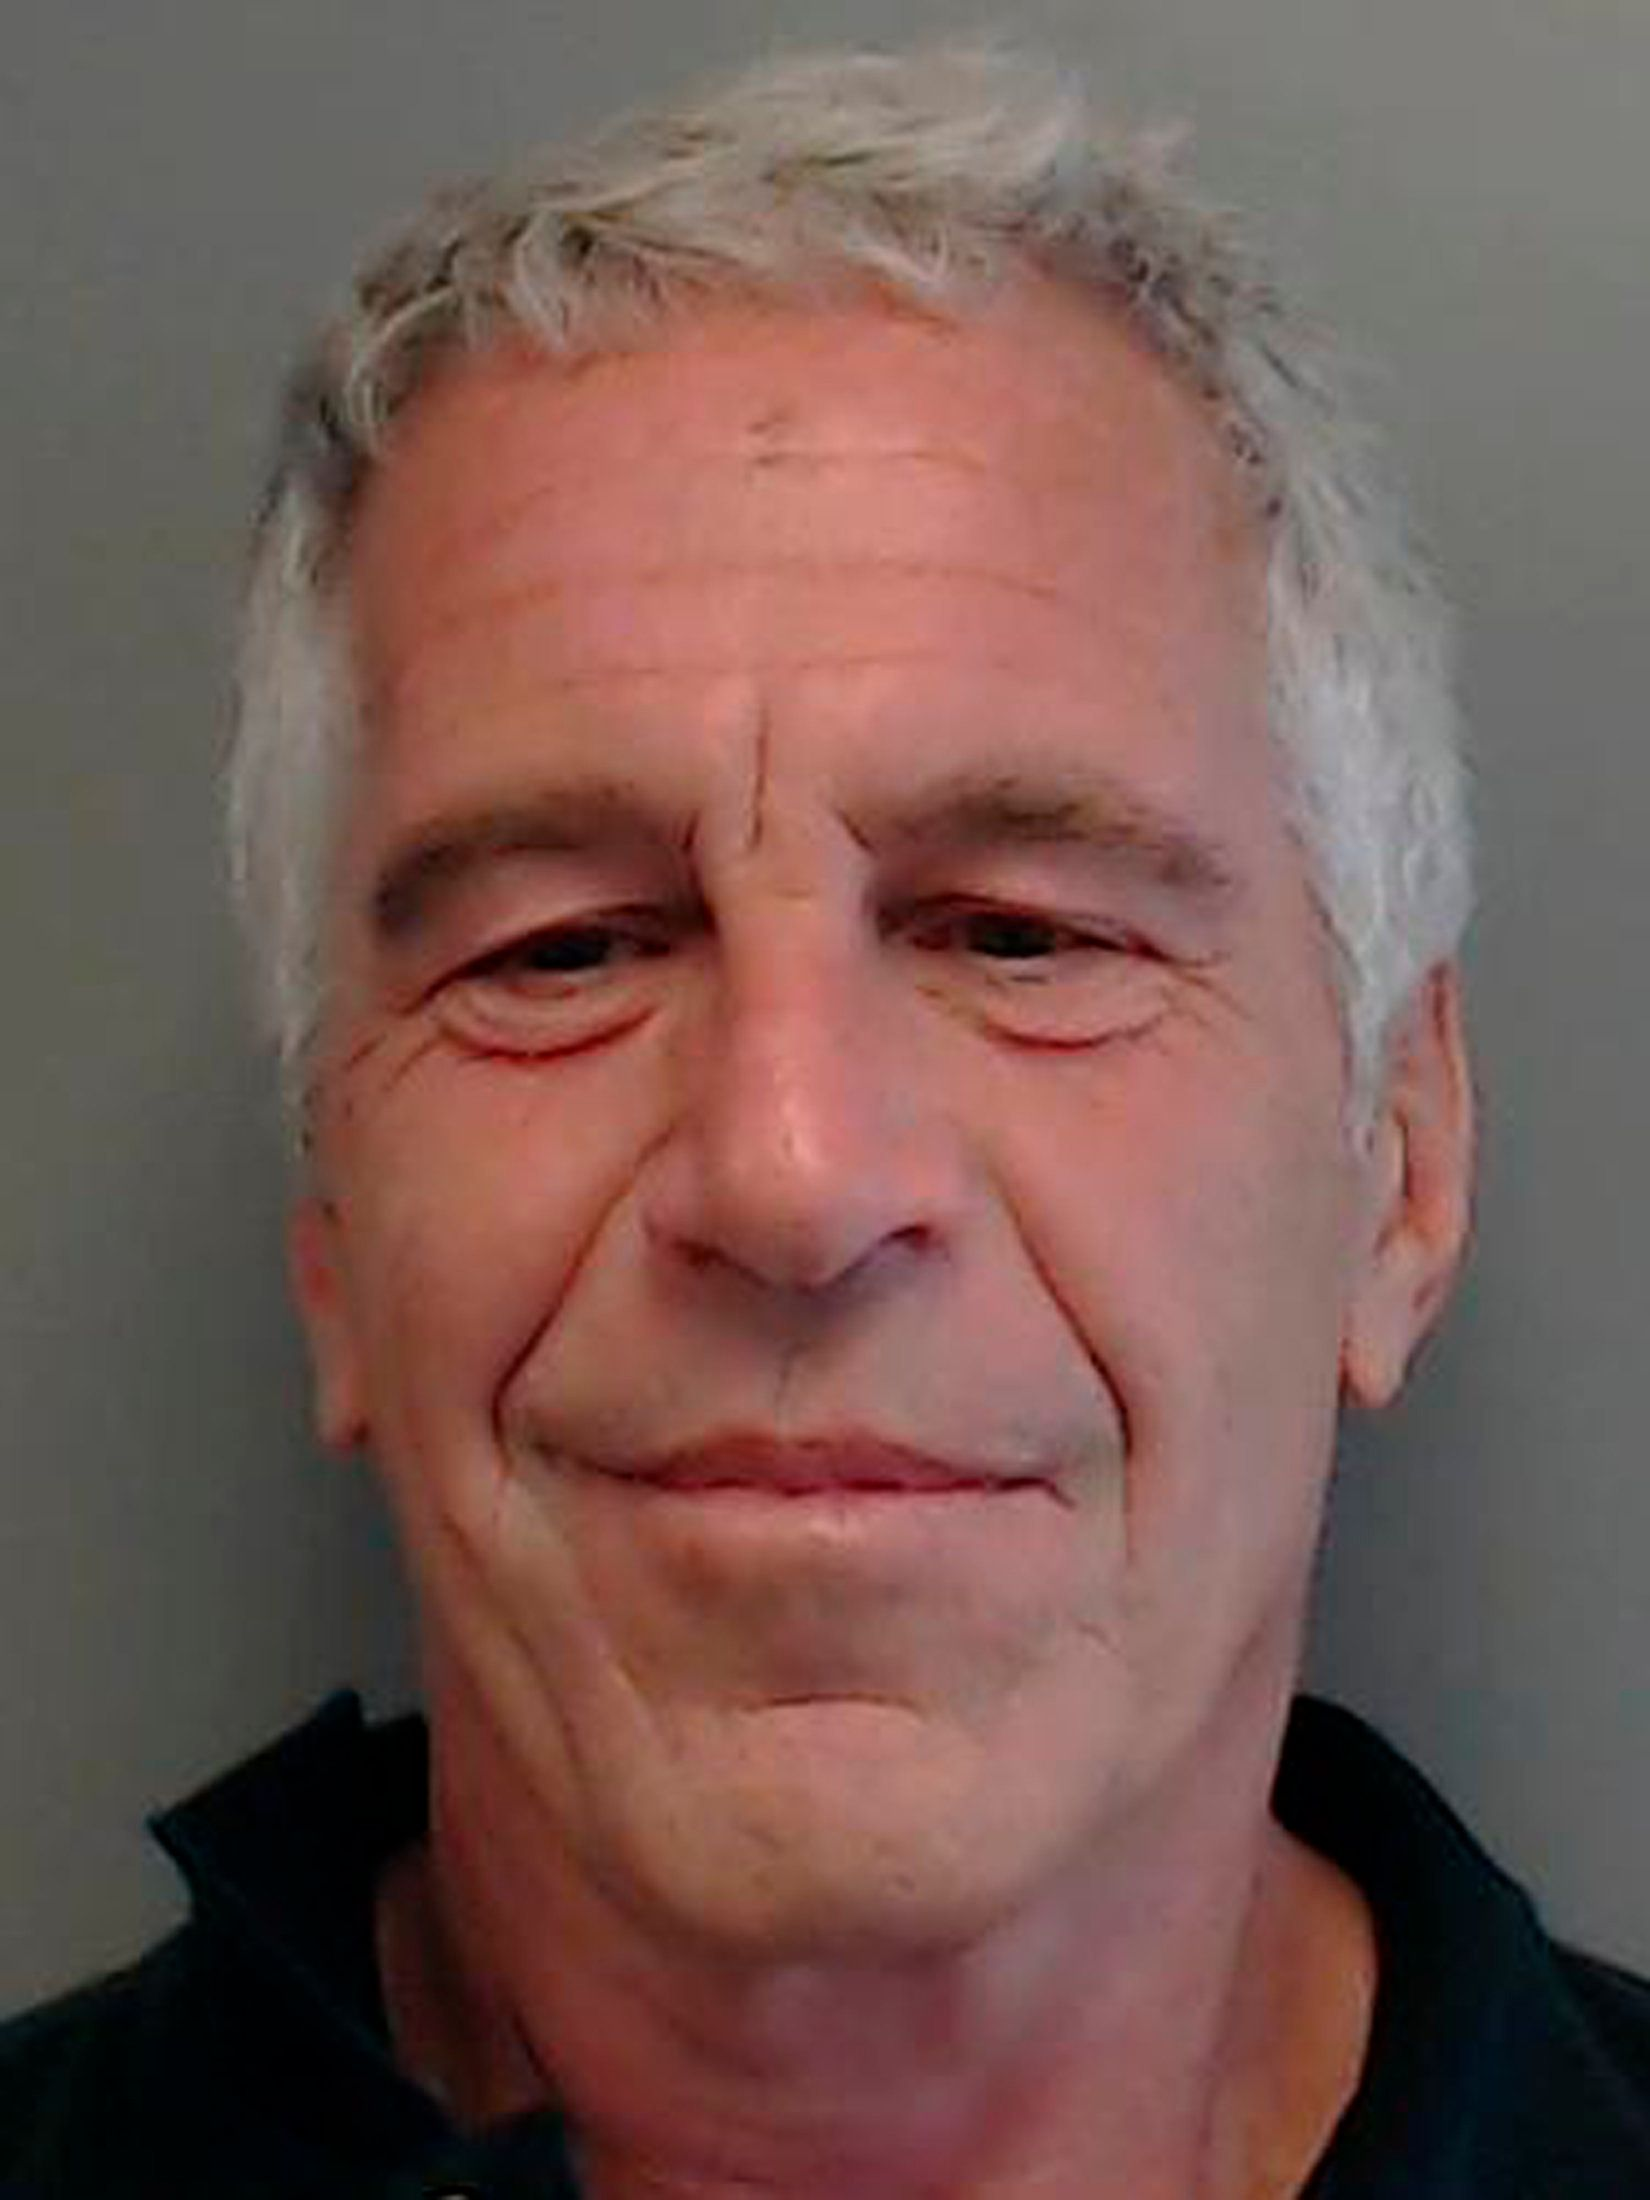 Jeffrey Epstein is shown in this undated Florida Department of Law Enforcement photo. 